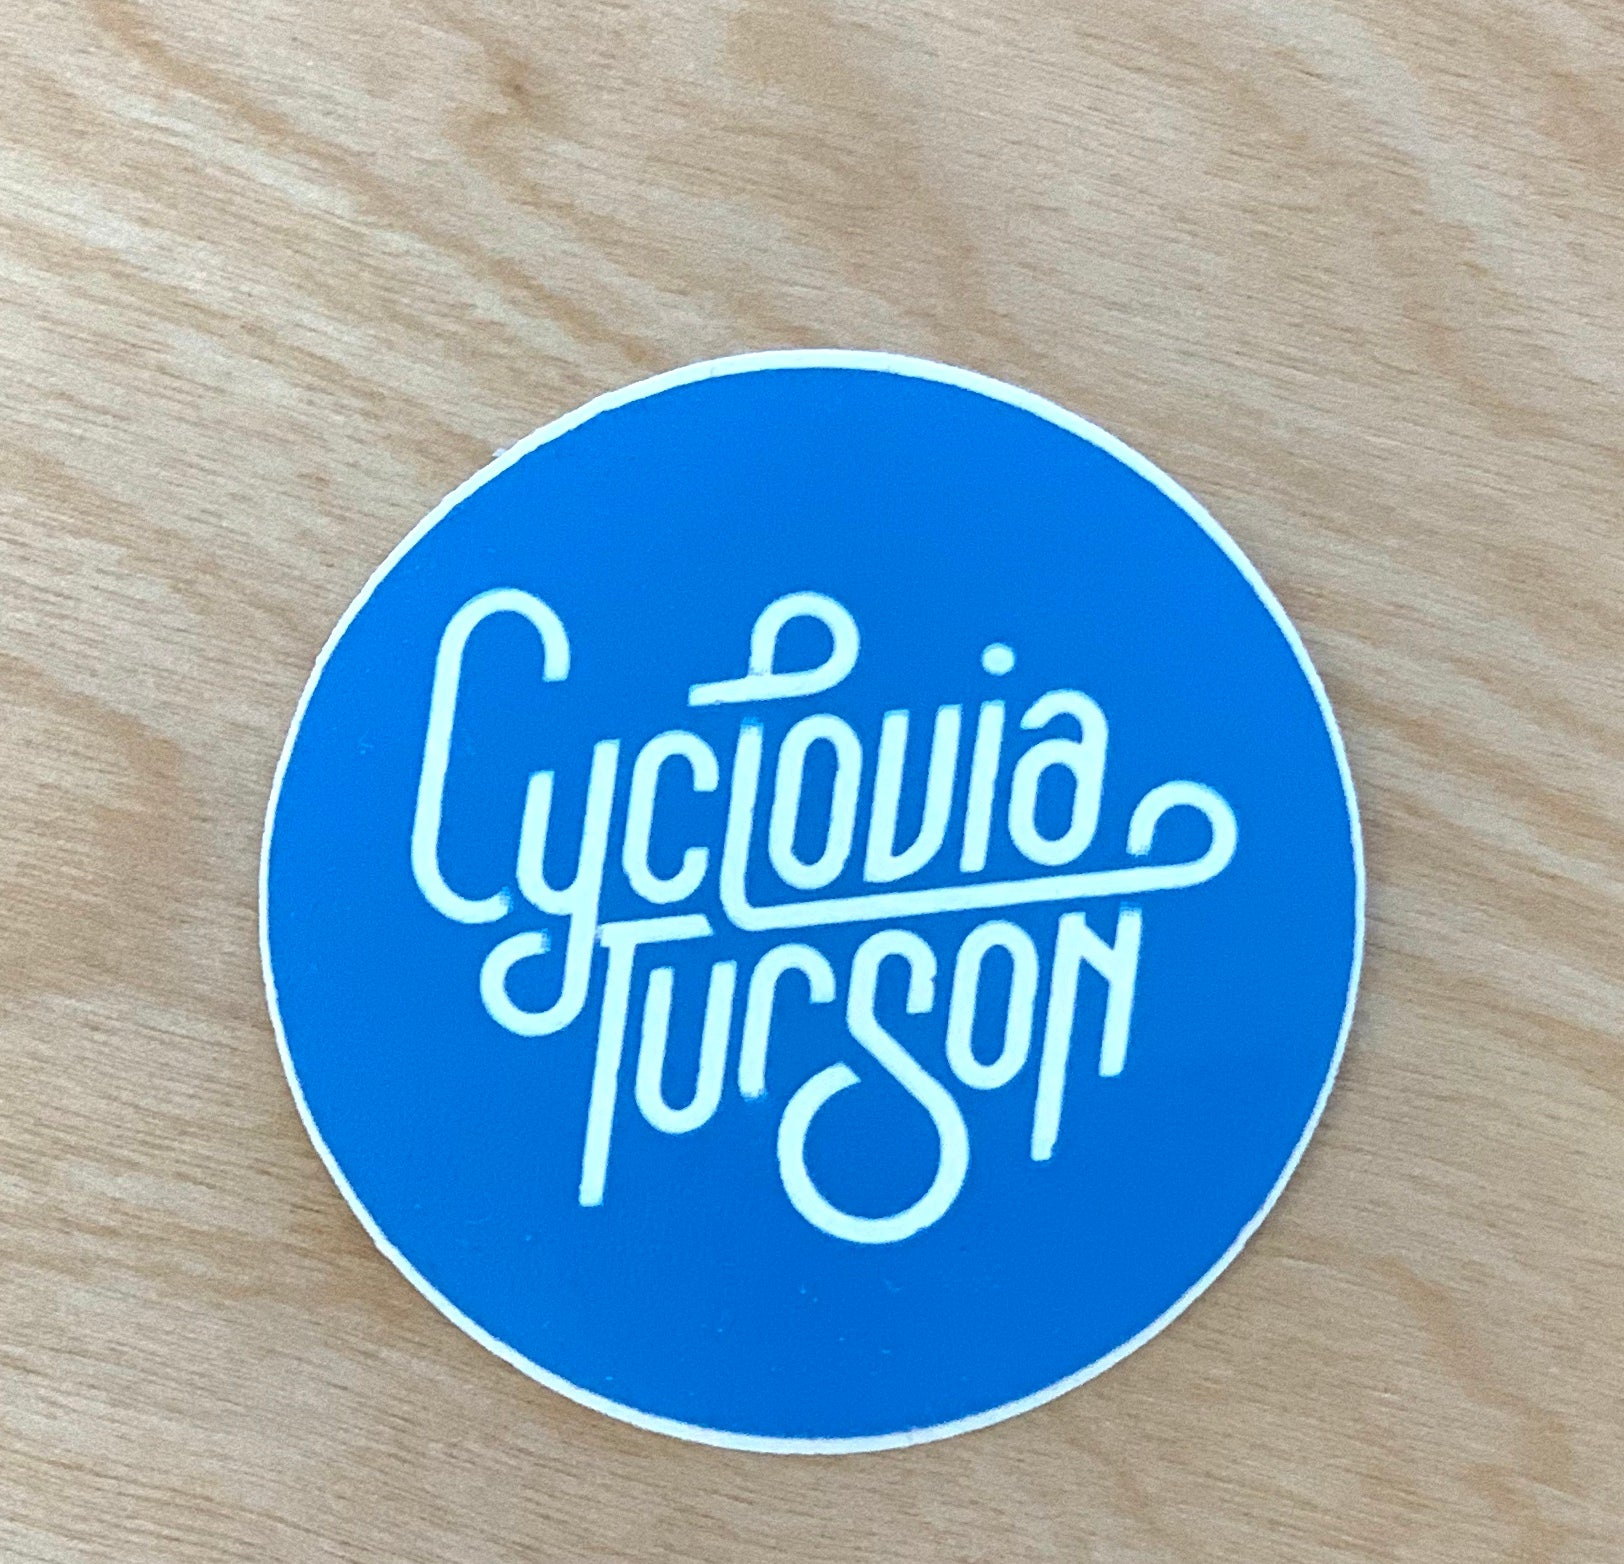 Cyclovia Tucson Stickers